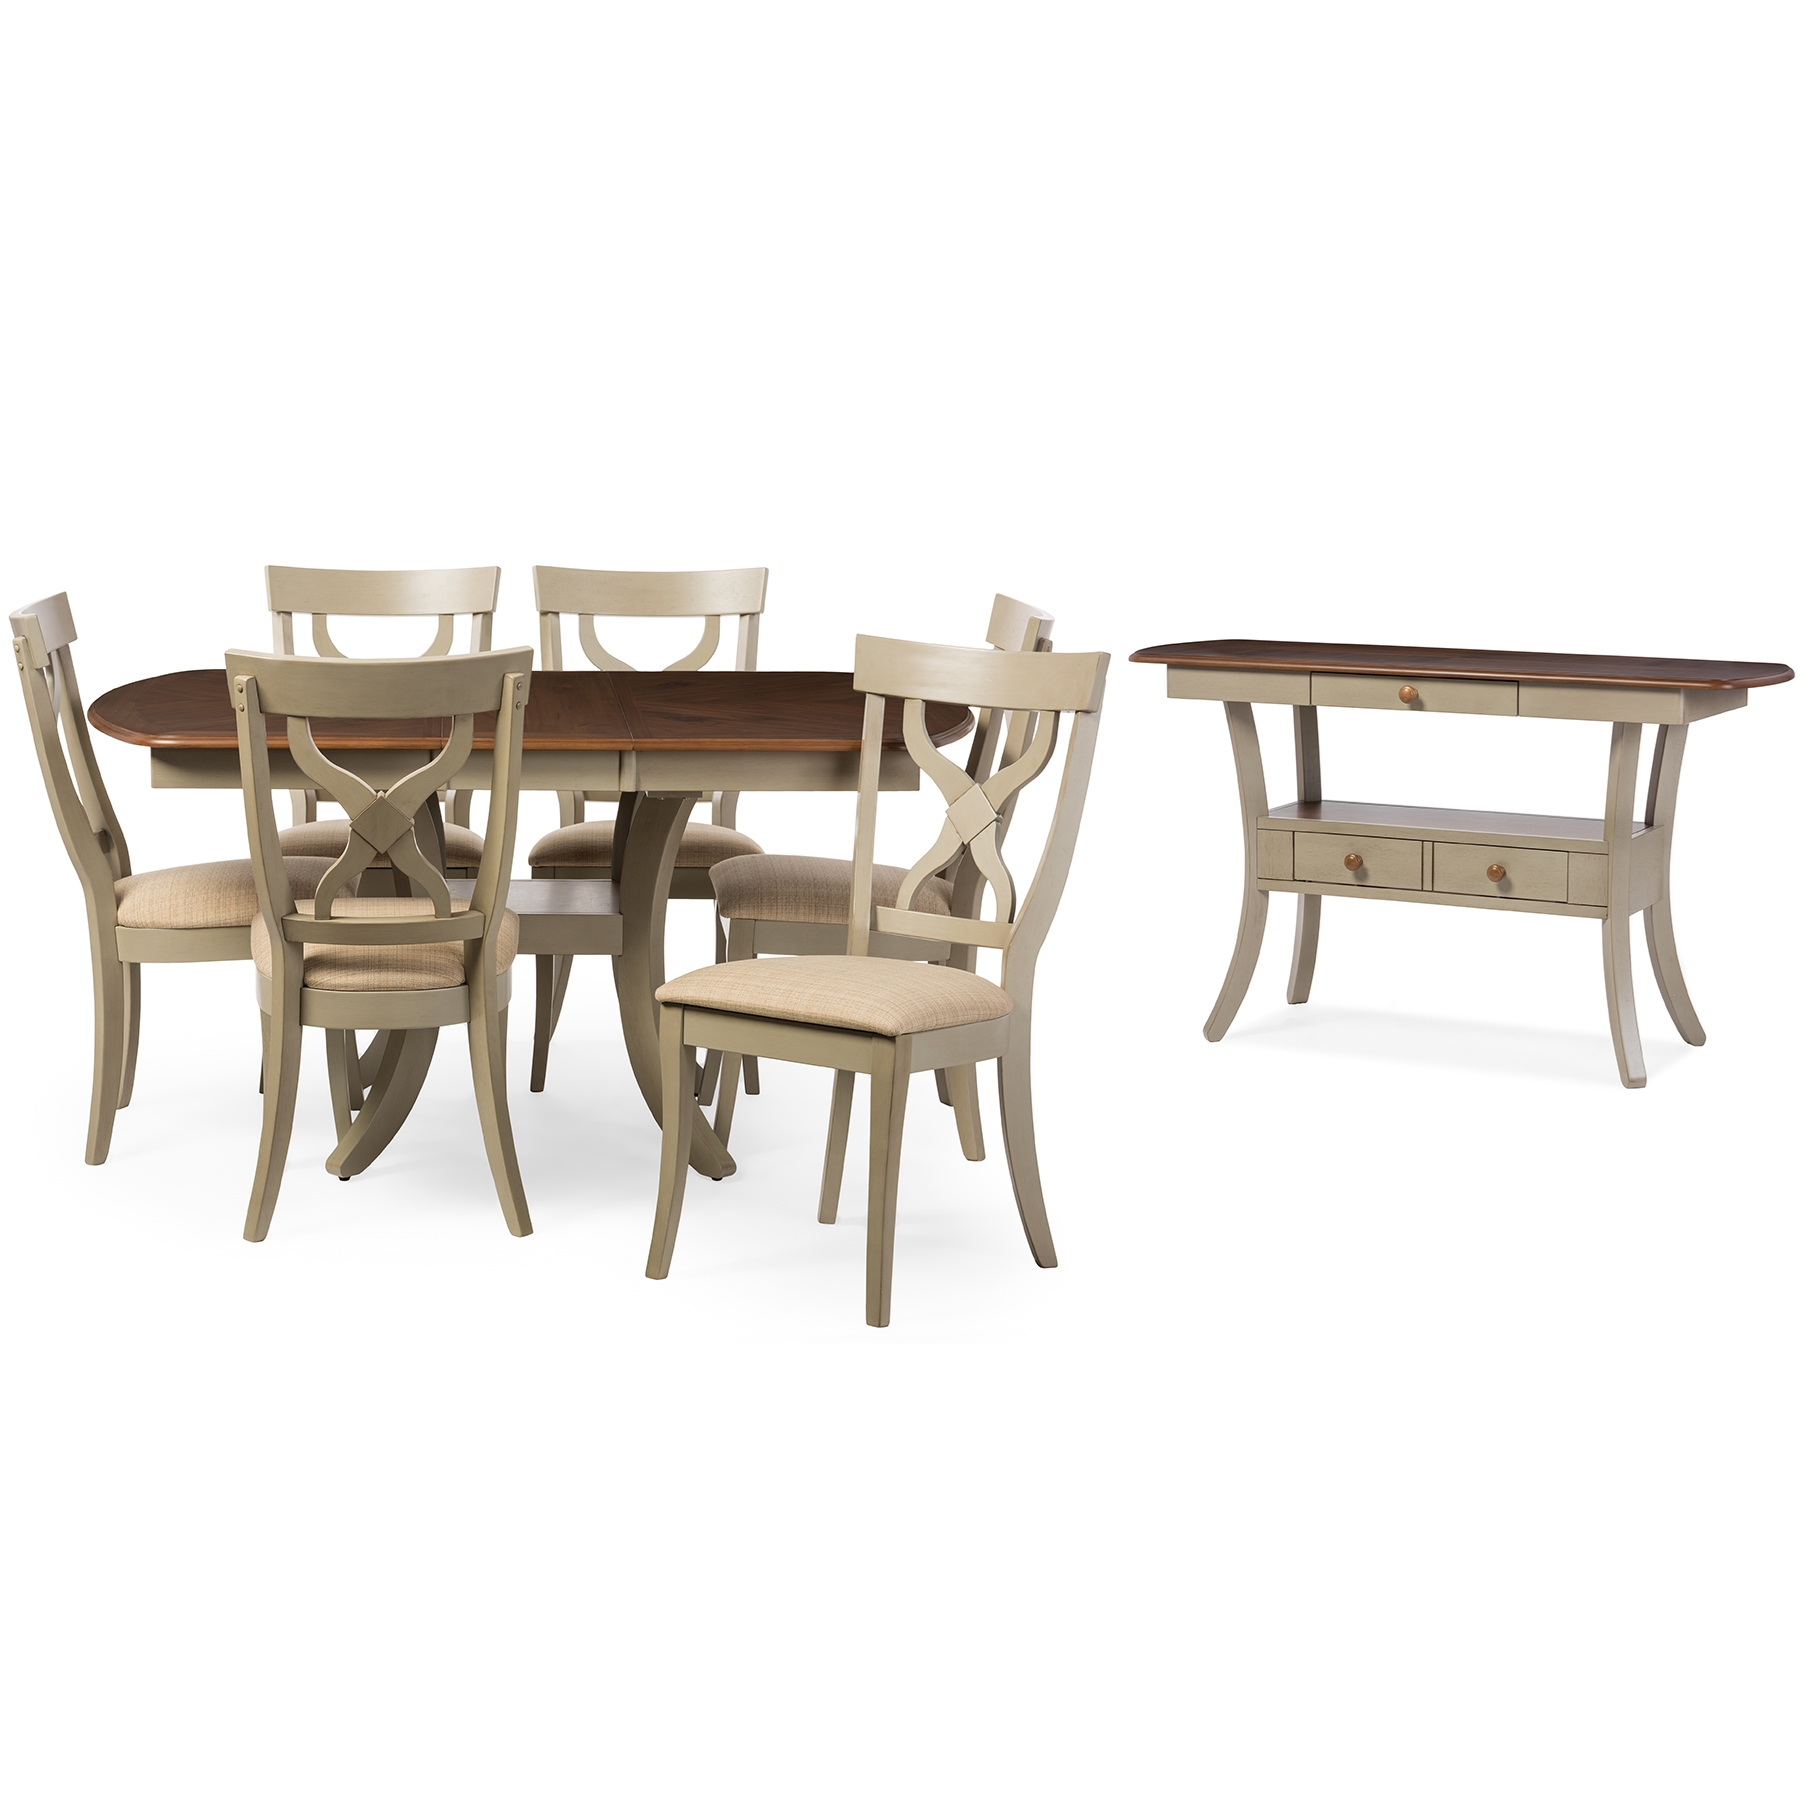 8 piece dining room set living room baxton studio balmoral chic country cottage antique oak wood and distressed light grey 8piece piece dining sets room furniture affordable modern